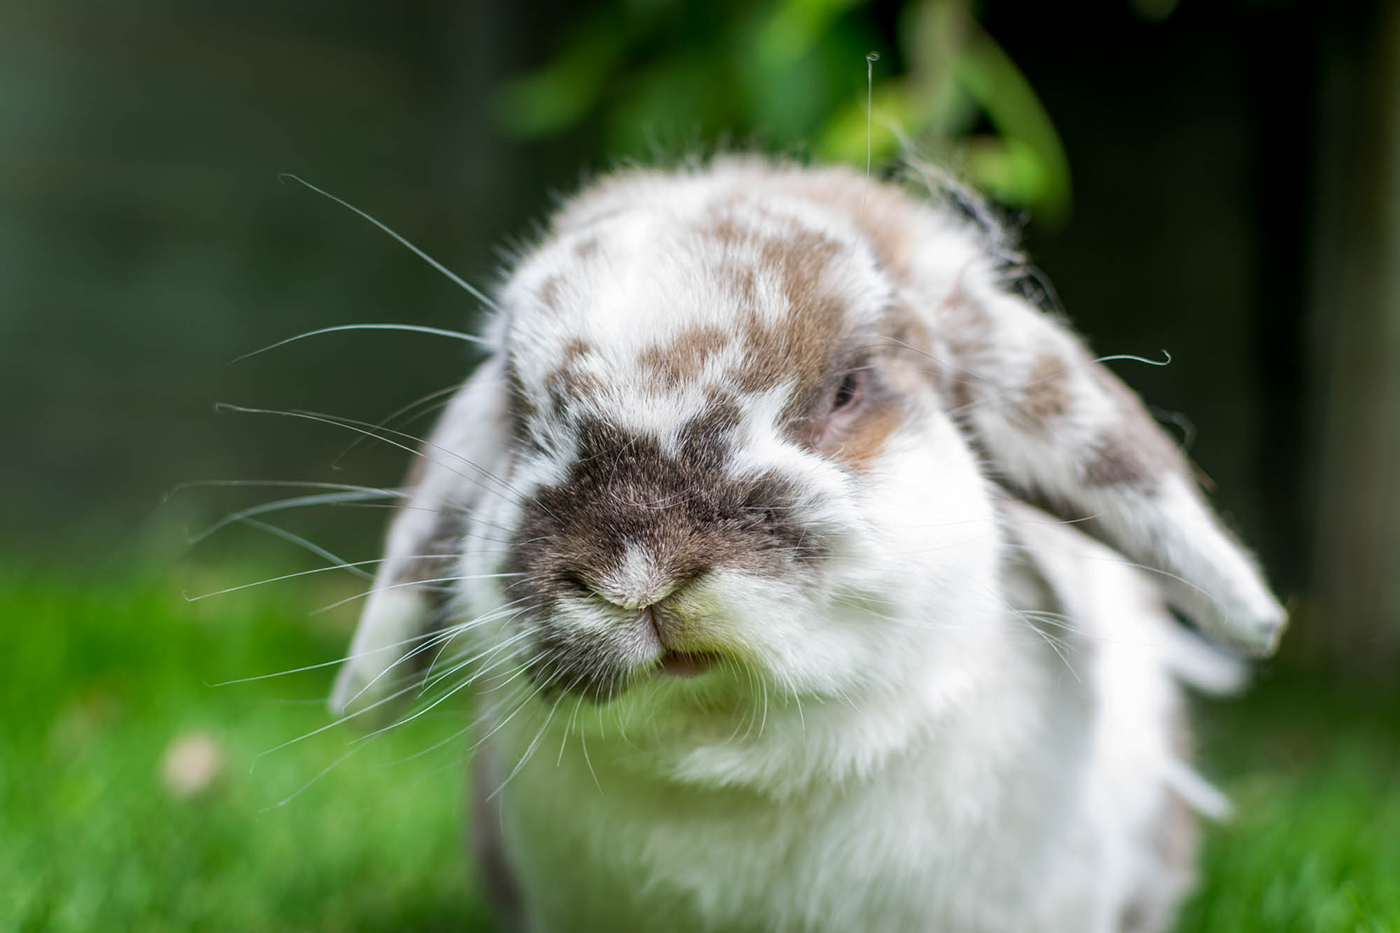 Rabbit_PhotoDSC_0590